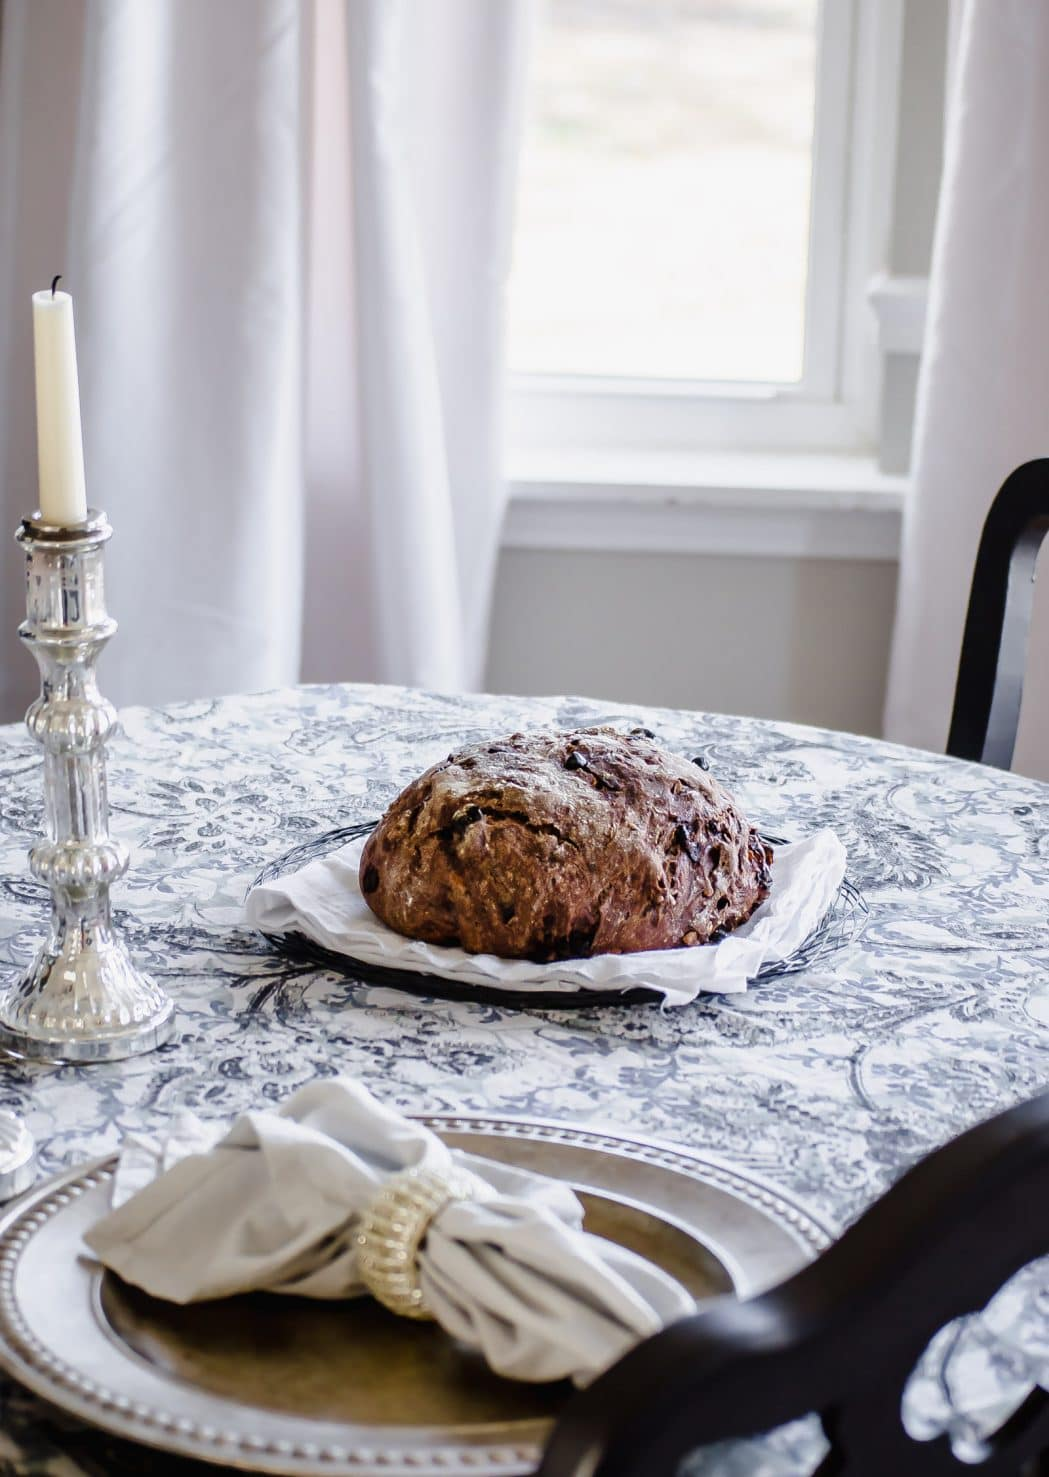 A loaf of chocolate rye bread on a table.